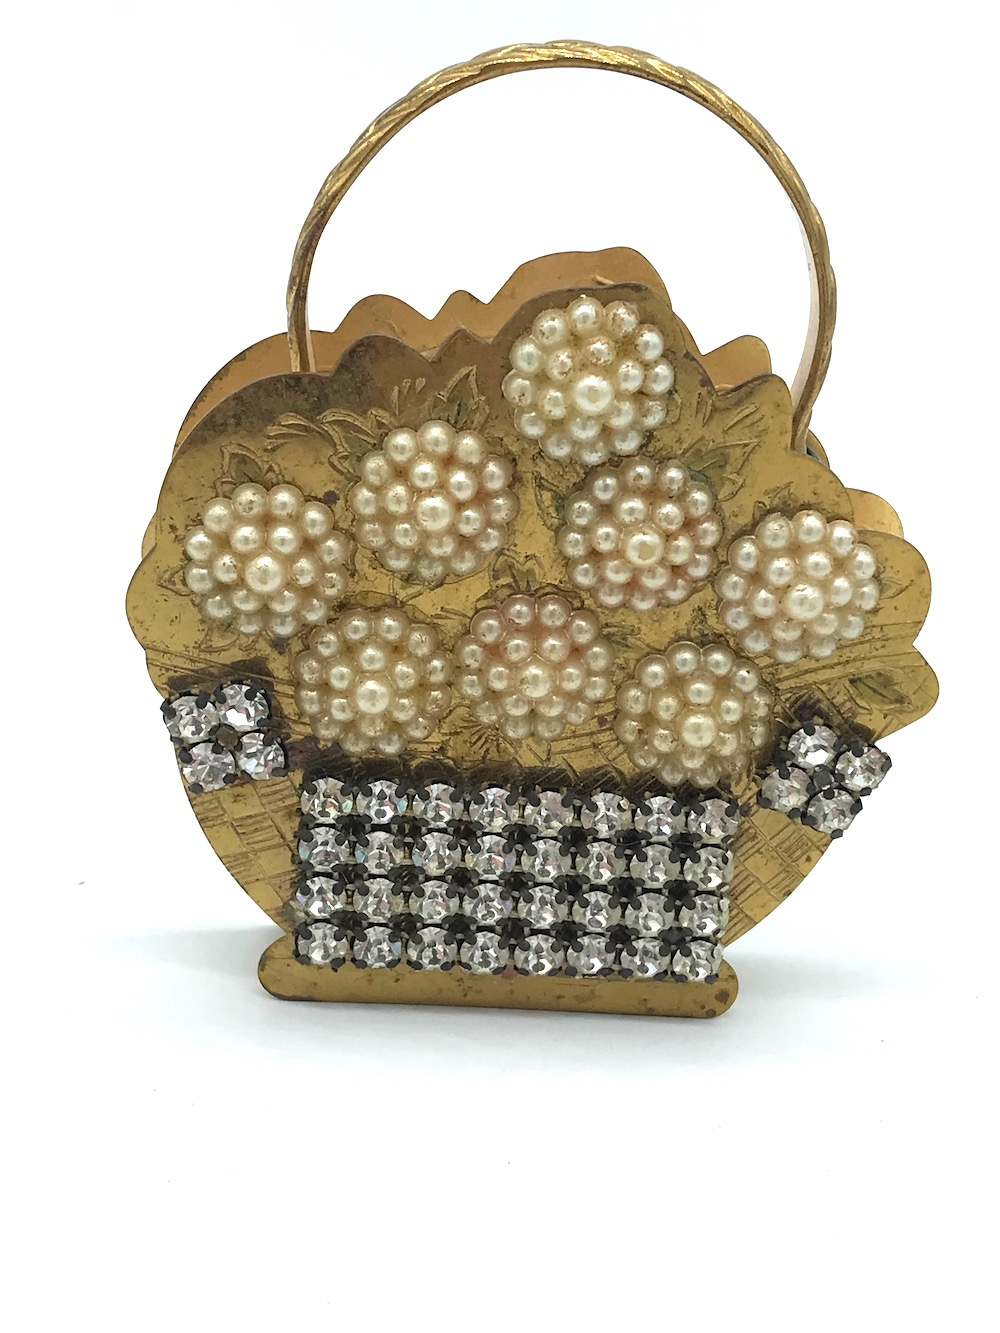 Lot 8588J: Pearl, Make Up Compact, Flower Purse 18th Century